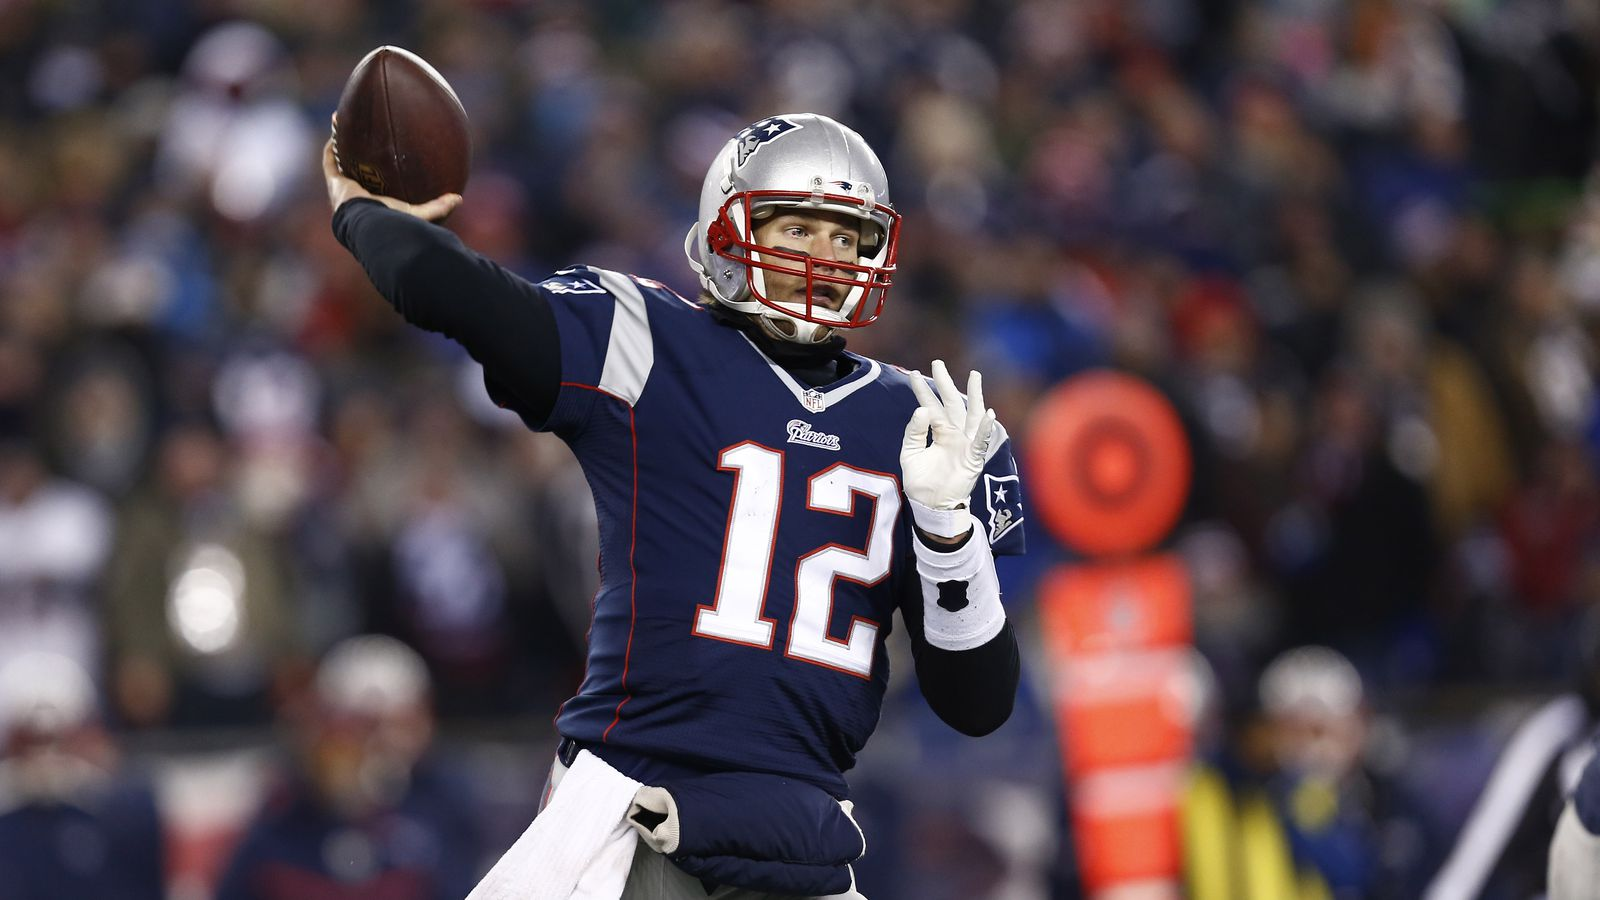 tom brady spends time with throwing coach during playoff - HD1280×966